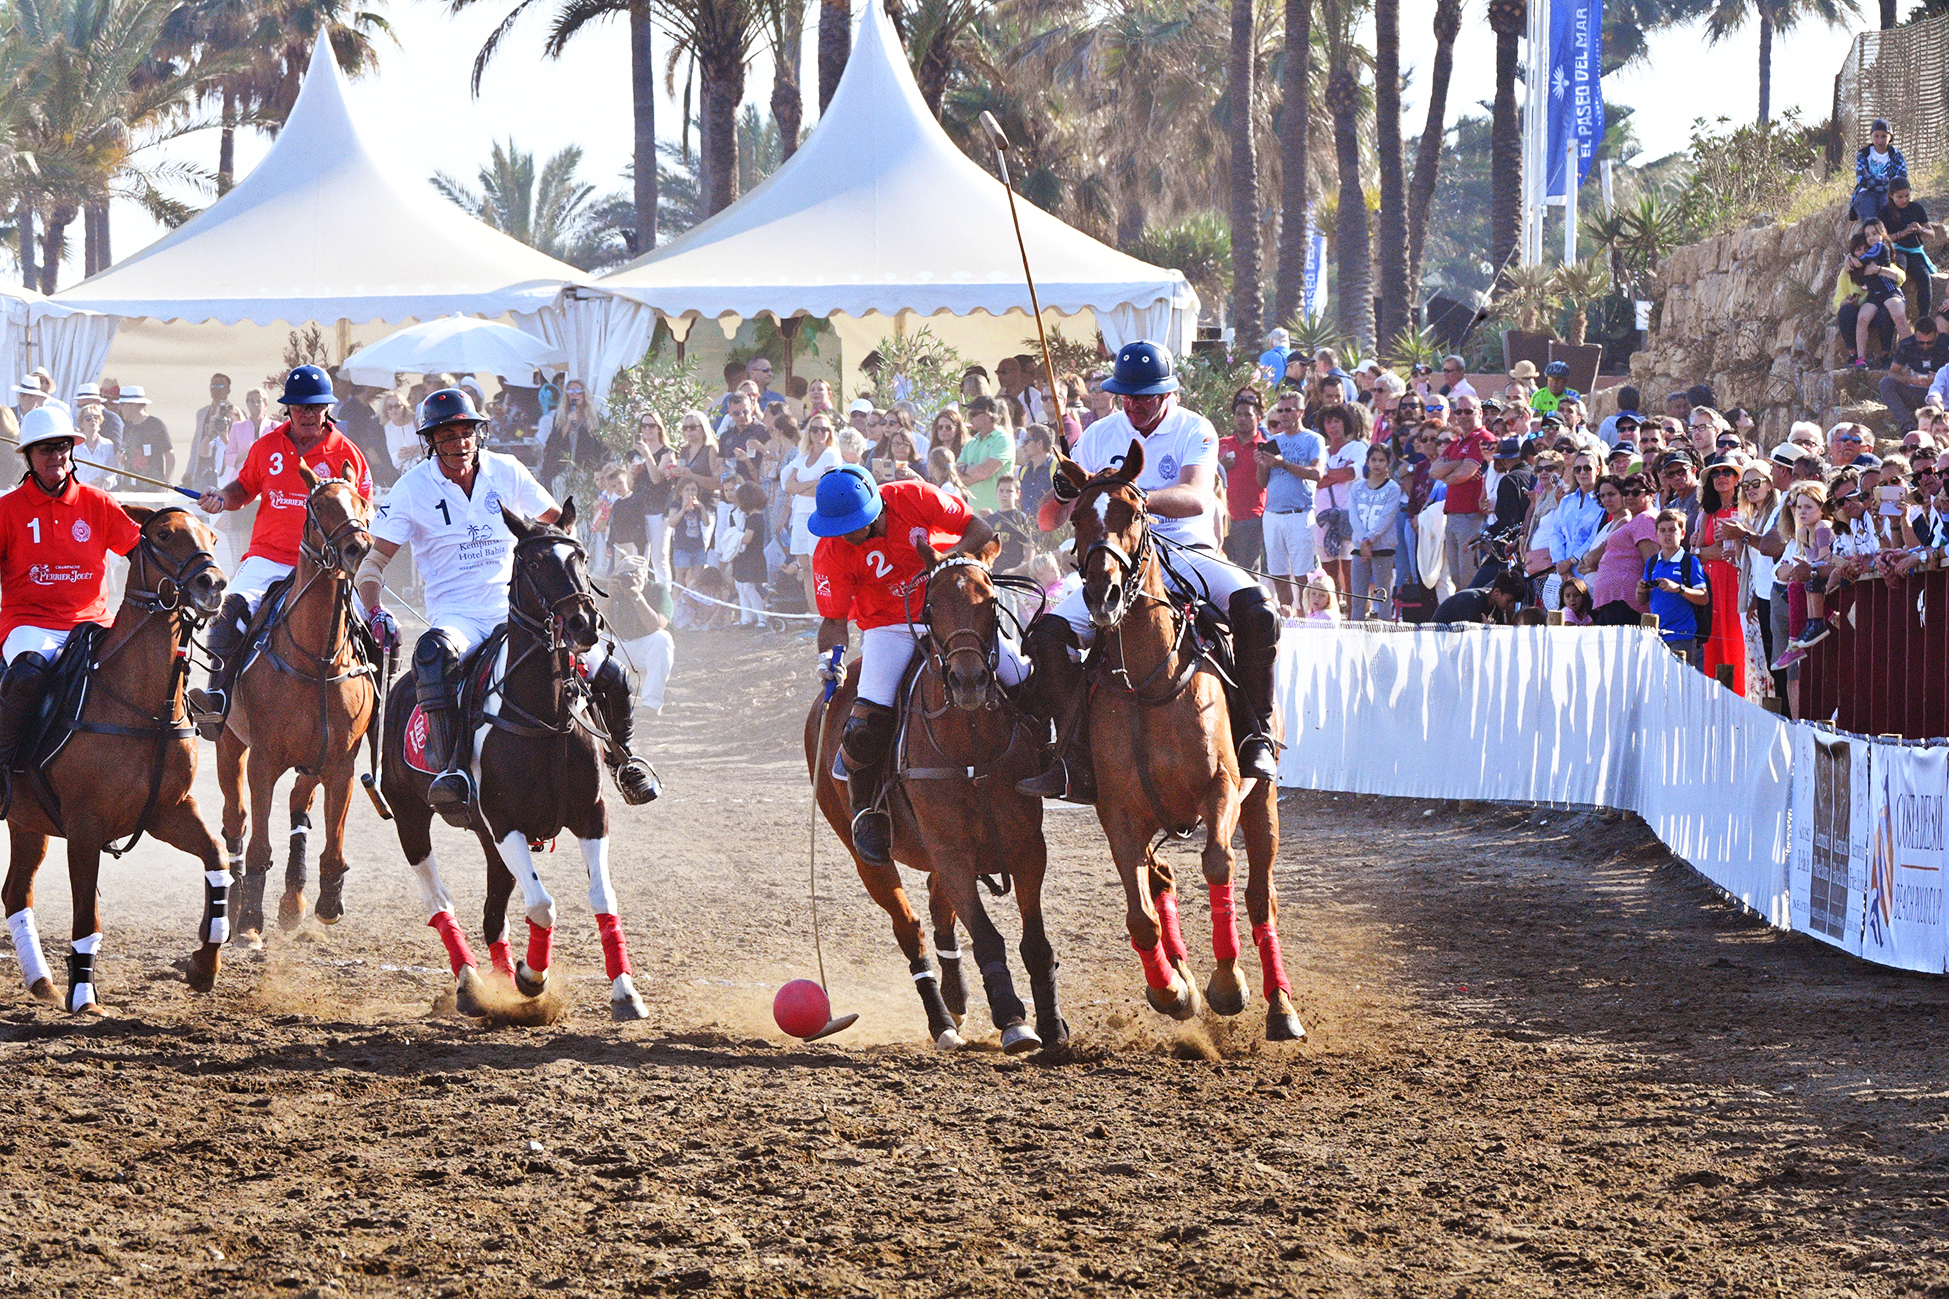 glamour-and-excitement-at-the-first-costa-del-sol-beach-polo-tournament 2 polomagazine